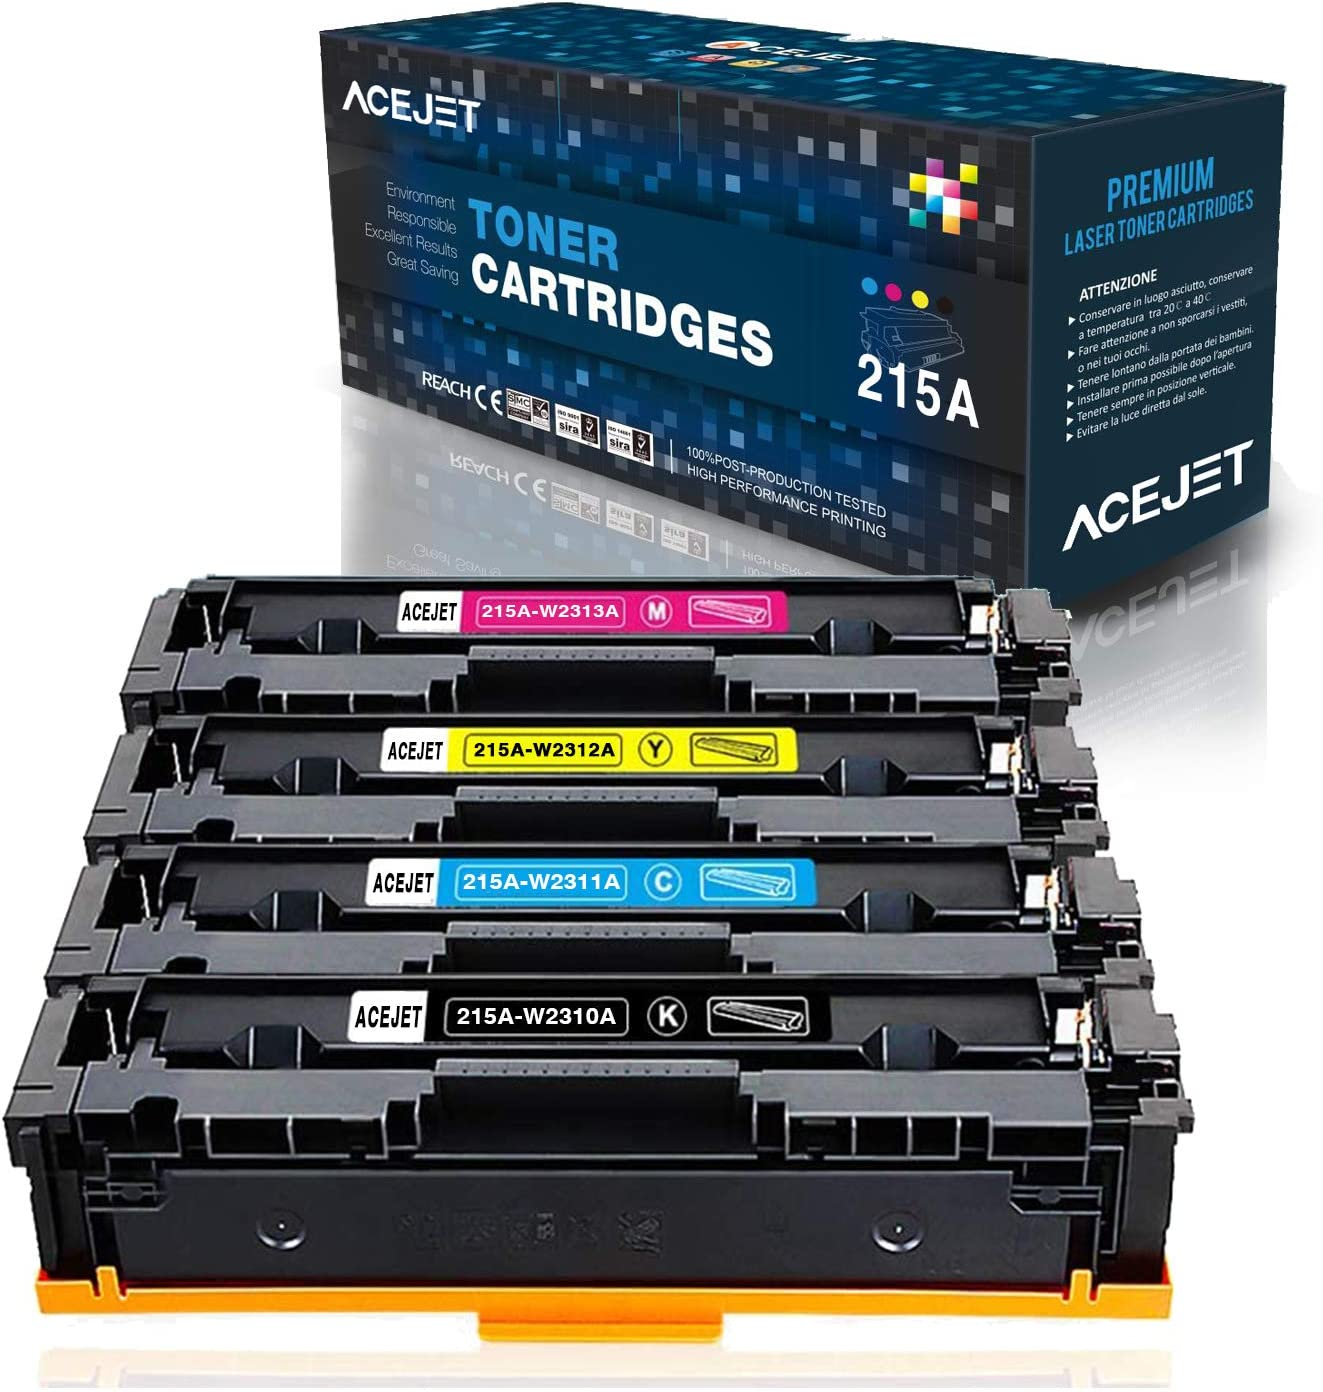 ACEJET Compatible 215A 215X Toner Cartridges Replacement for HP 215A W2310A W2311A W2312A W2313A for HP Color Laserjet Pro MFP M182nw M183fw M155 M183 M182 No Chips(Black Cyan Yellow Magenta, 4-Pack)